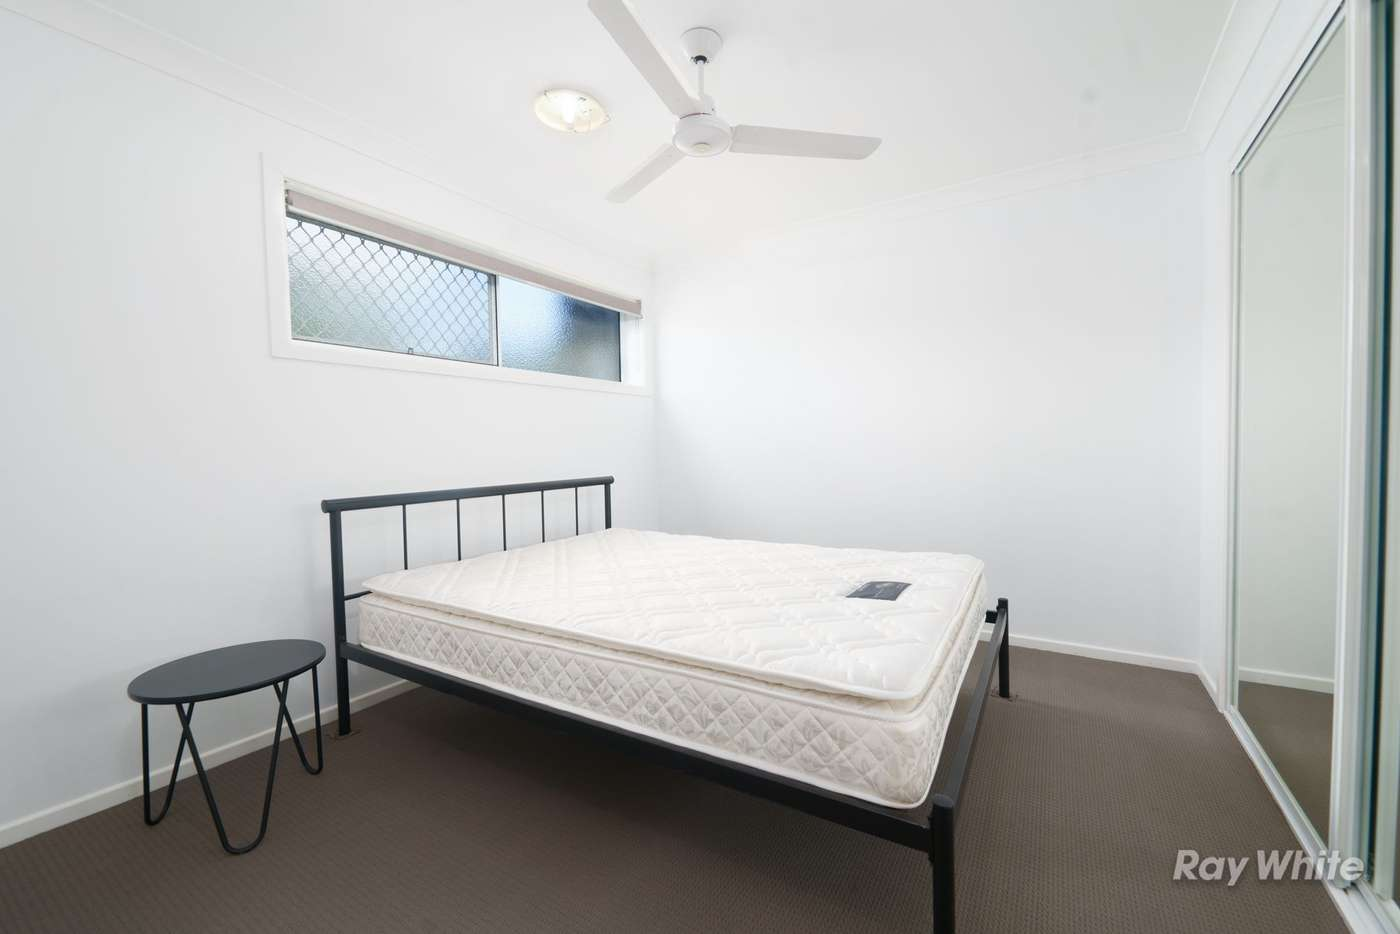 Sixth view of Homely unit listing, 4A Peppermint Place, South Grafton NSW 2460